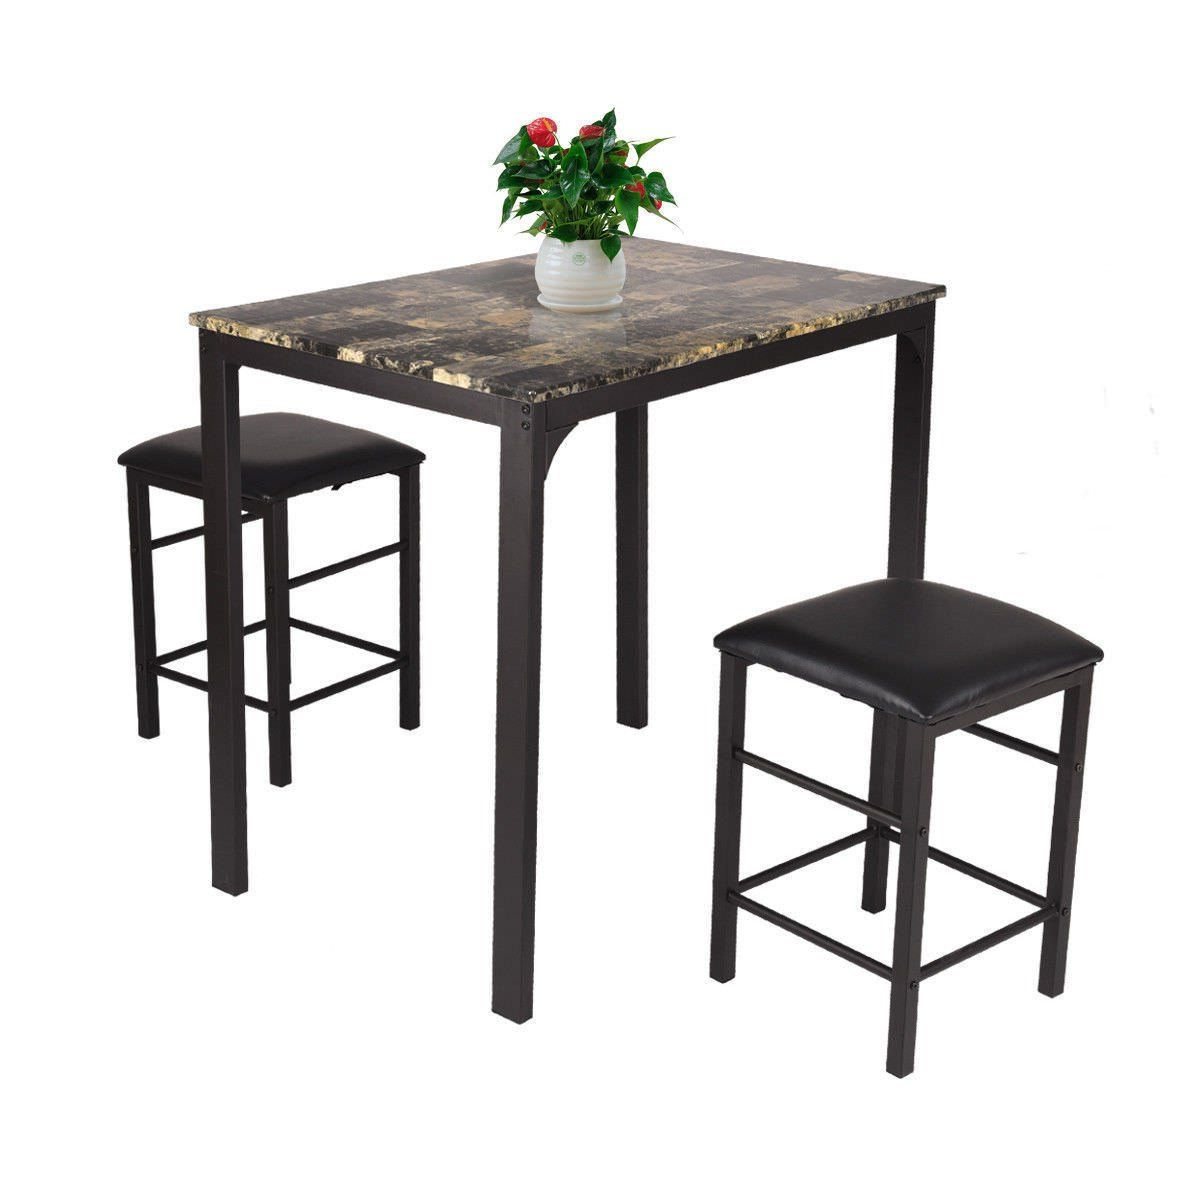 Well Liked 5 Piece Percie Industrial Counter Height Dining Set Oak/black Intended For Kerley 4 Piece Dining Sets (View 24 of 25)